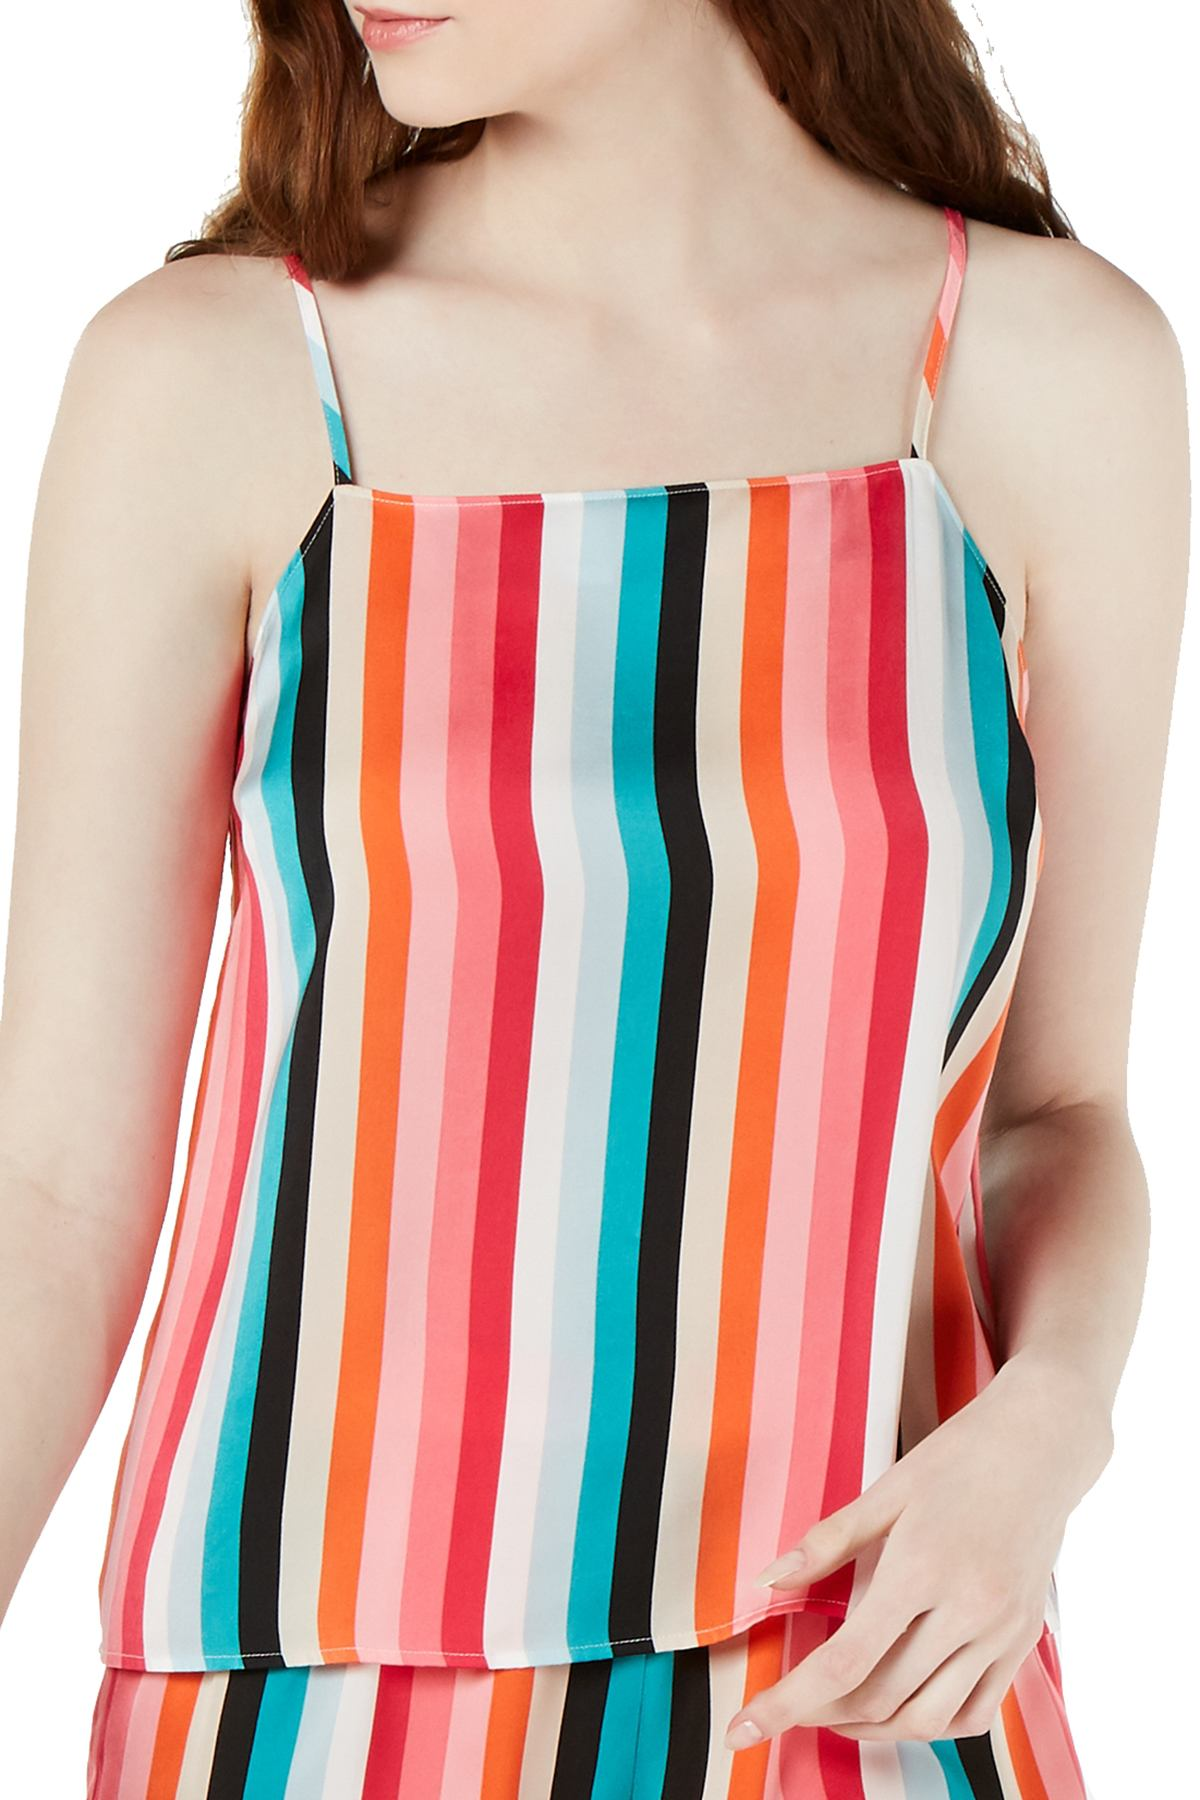 INC International Concepts Rainbow Striped Camisole